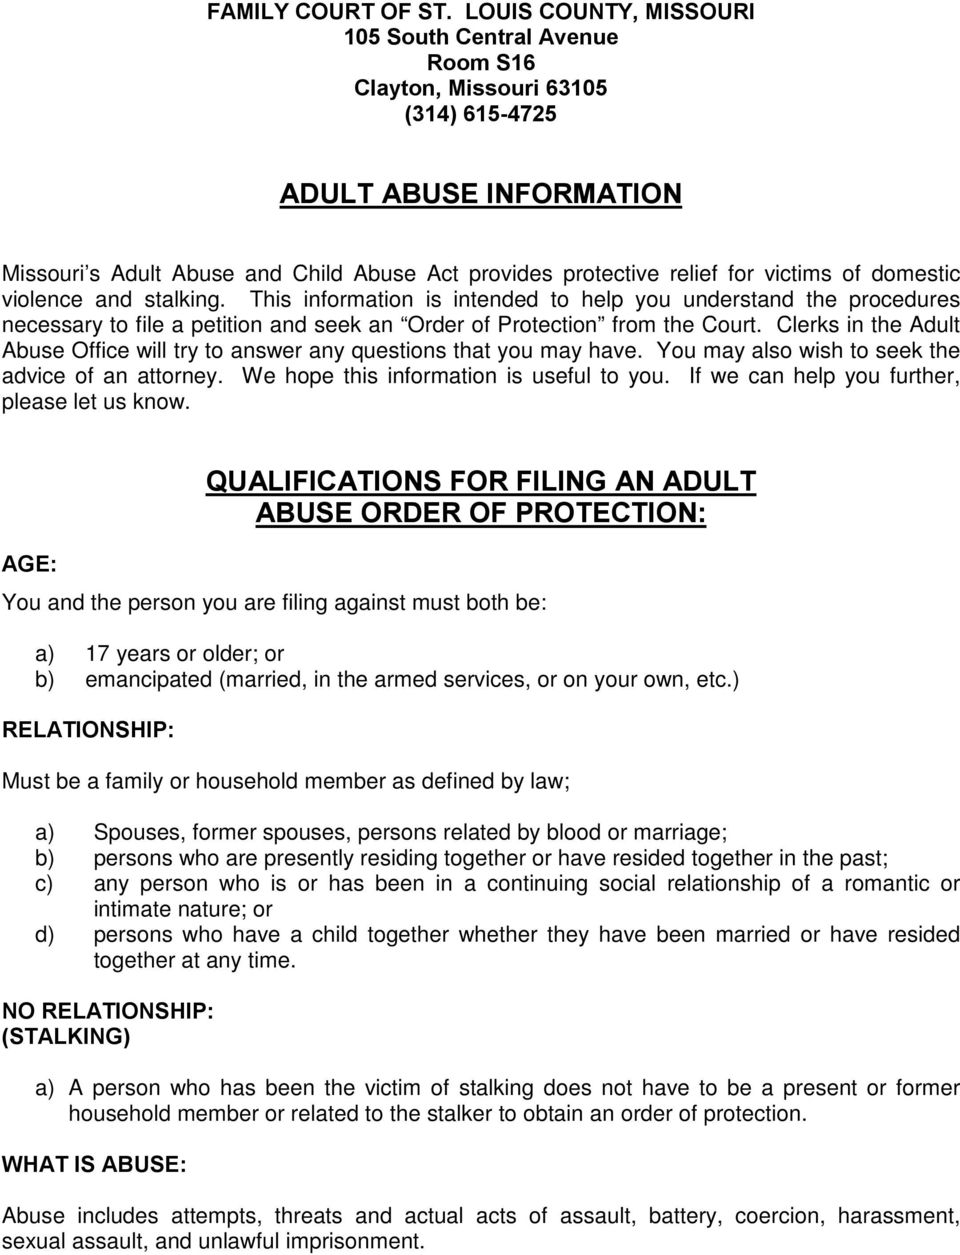 ADULT ABUSE INFORMATION QUALIFICATIONS FOR FILING AN ADULT